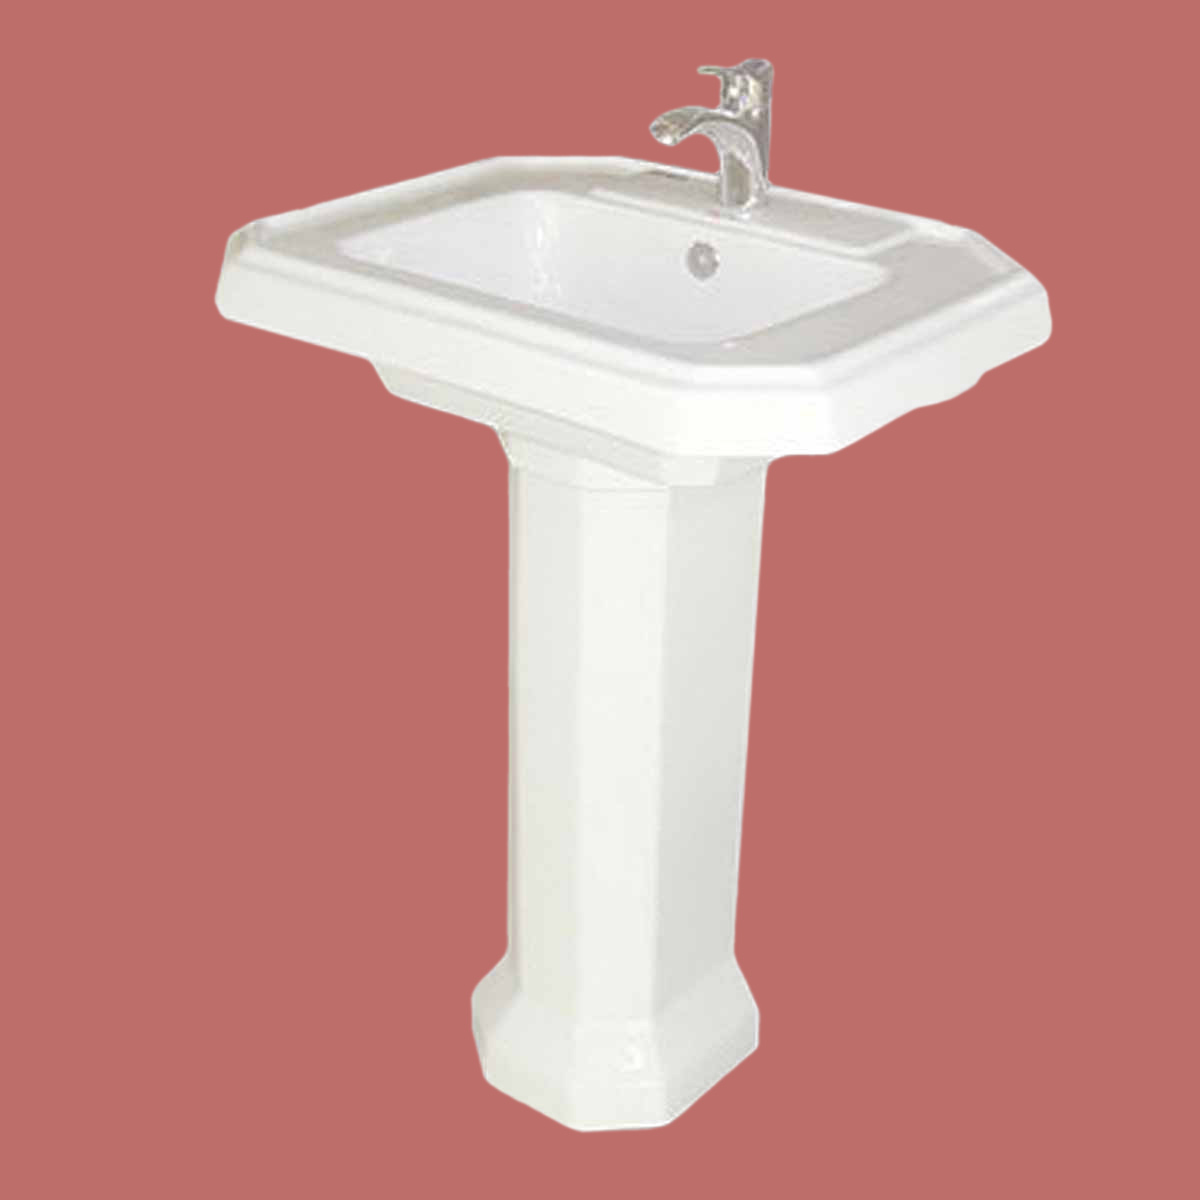 Single Hole Pedestal Sink : Bathroom Deluxe Pedestal Sink White China Single Hole